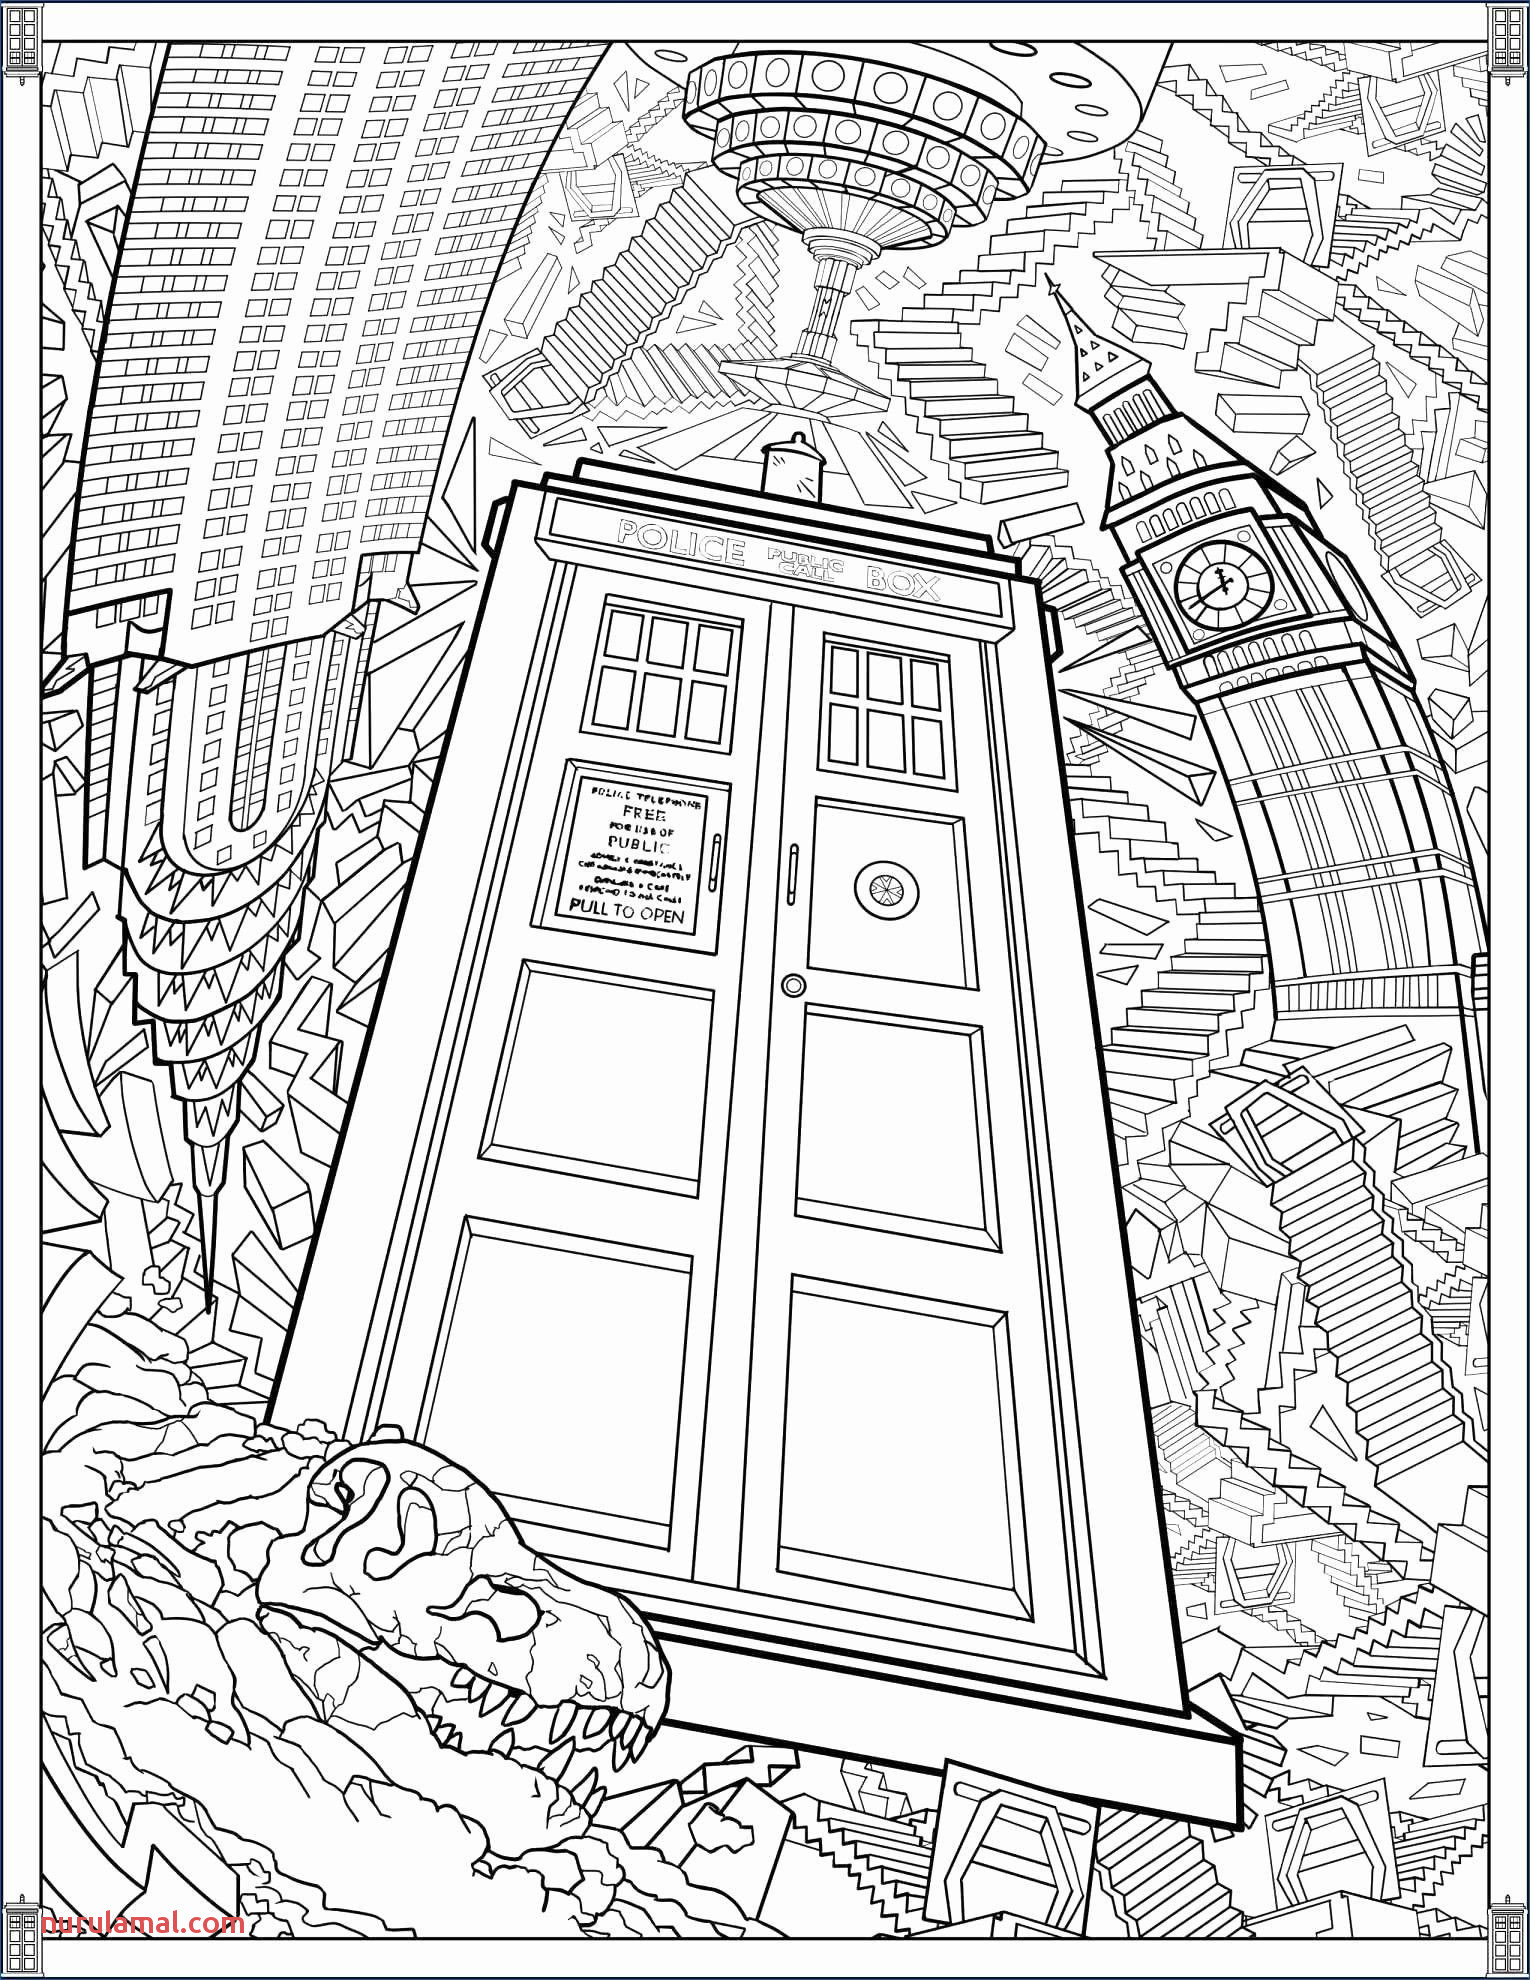 Coloring Pages Coloring Hidden Color by Number Math